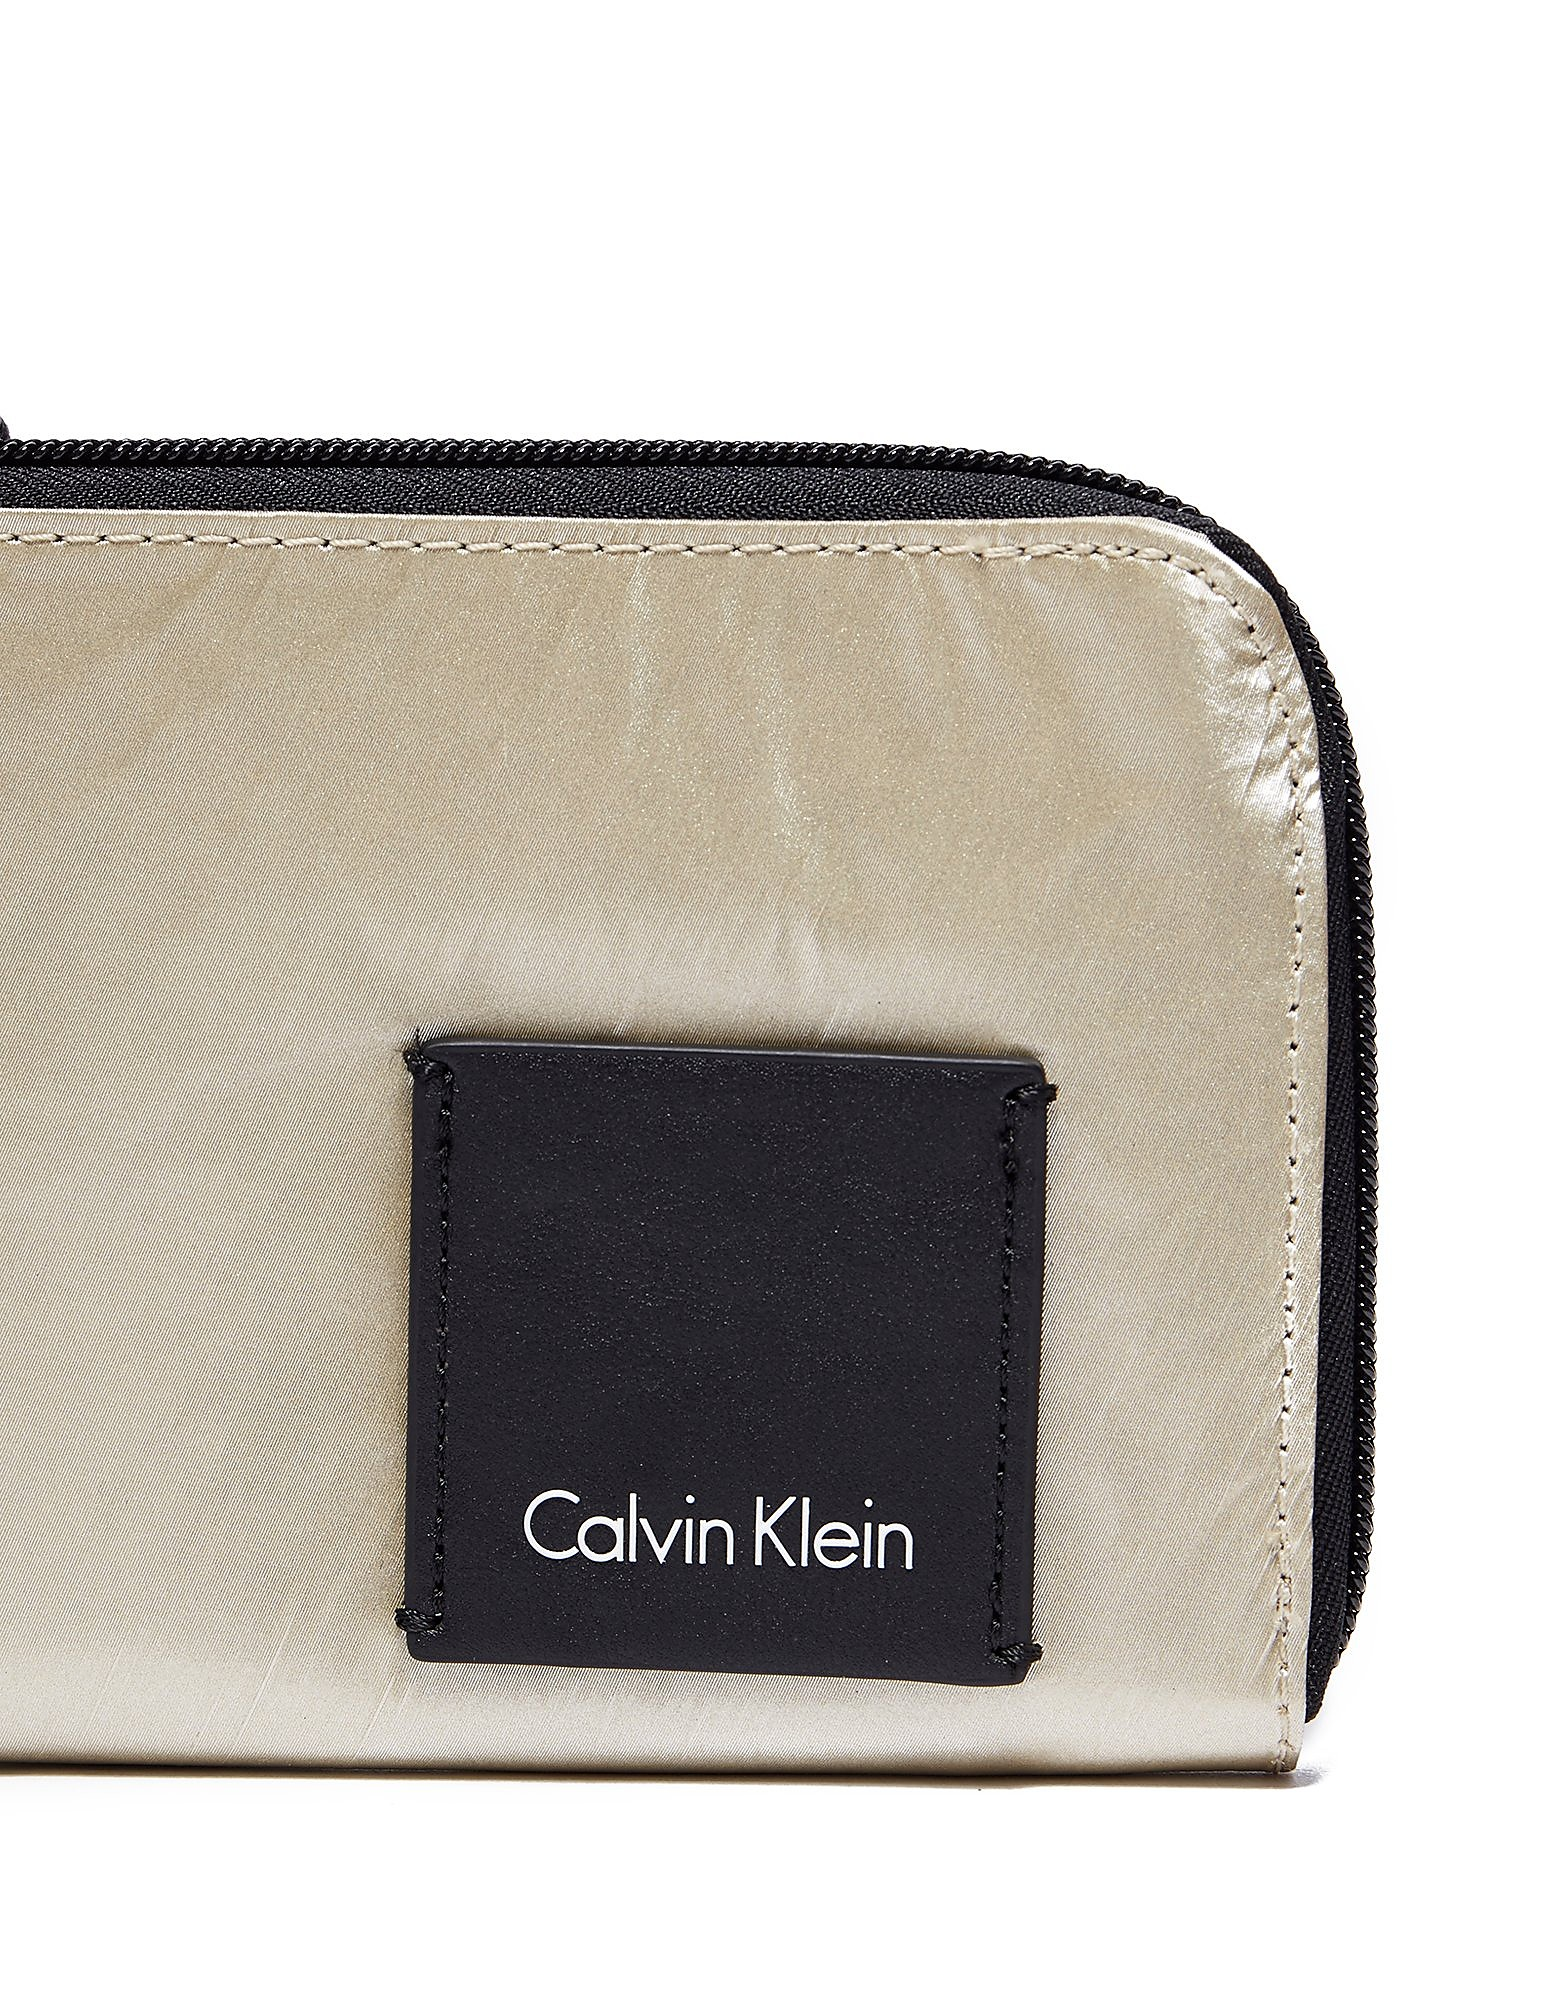 Calvin Klein Zipped Purse